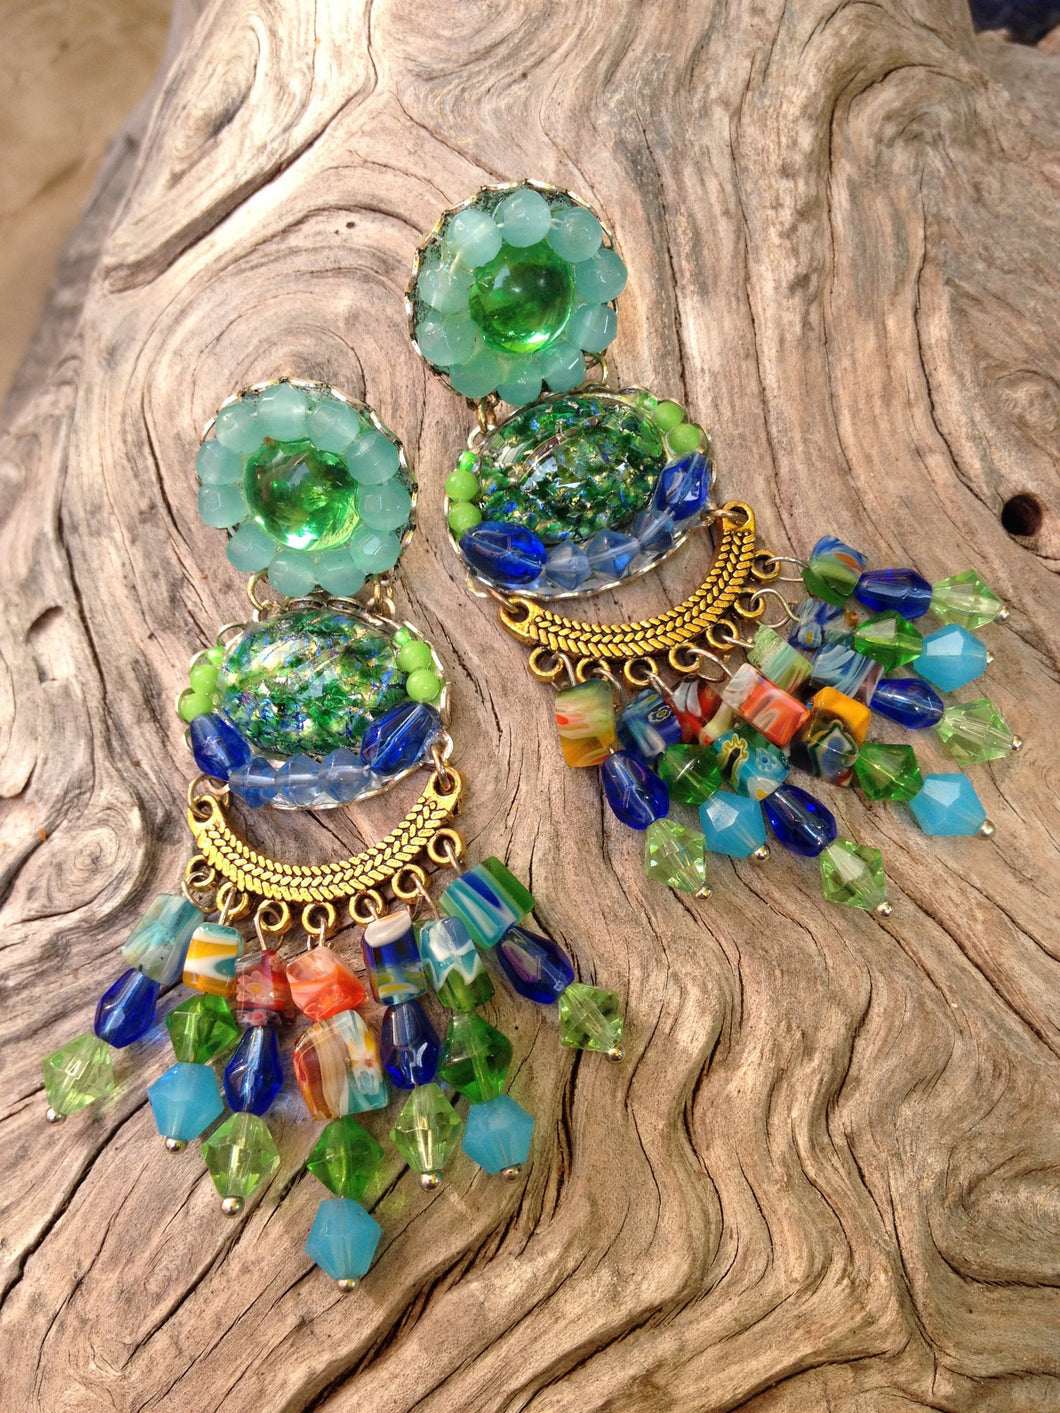 Green and Blue with Millefiore Chandelier Earrings by Amanda Martinson